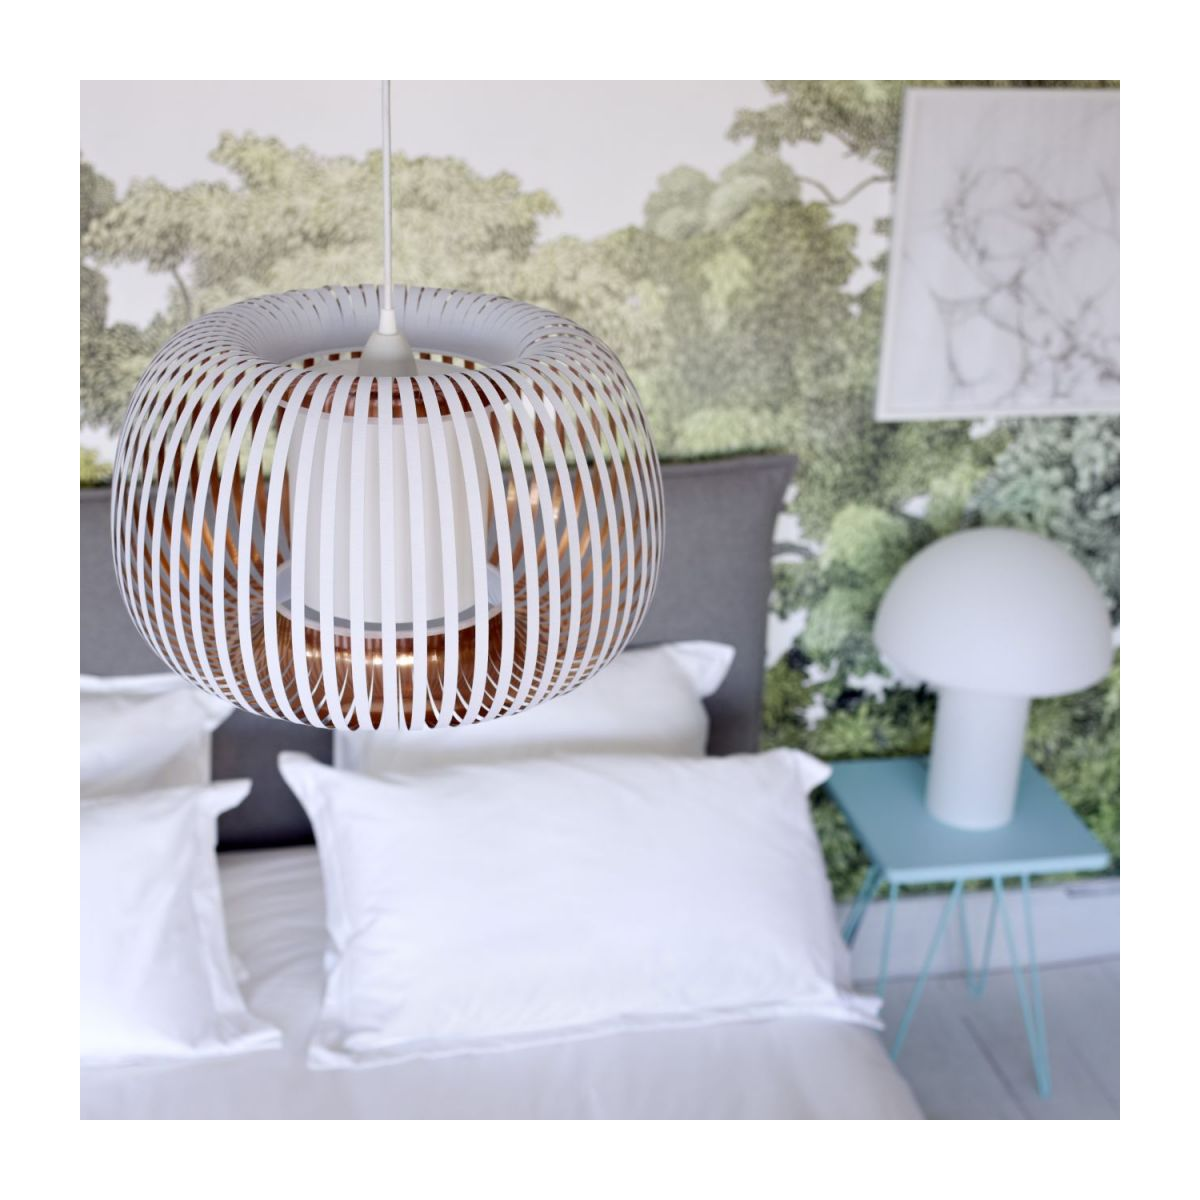 Ceiling lamp in PVC, white and copper n°5